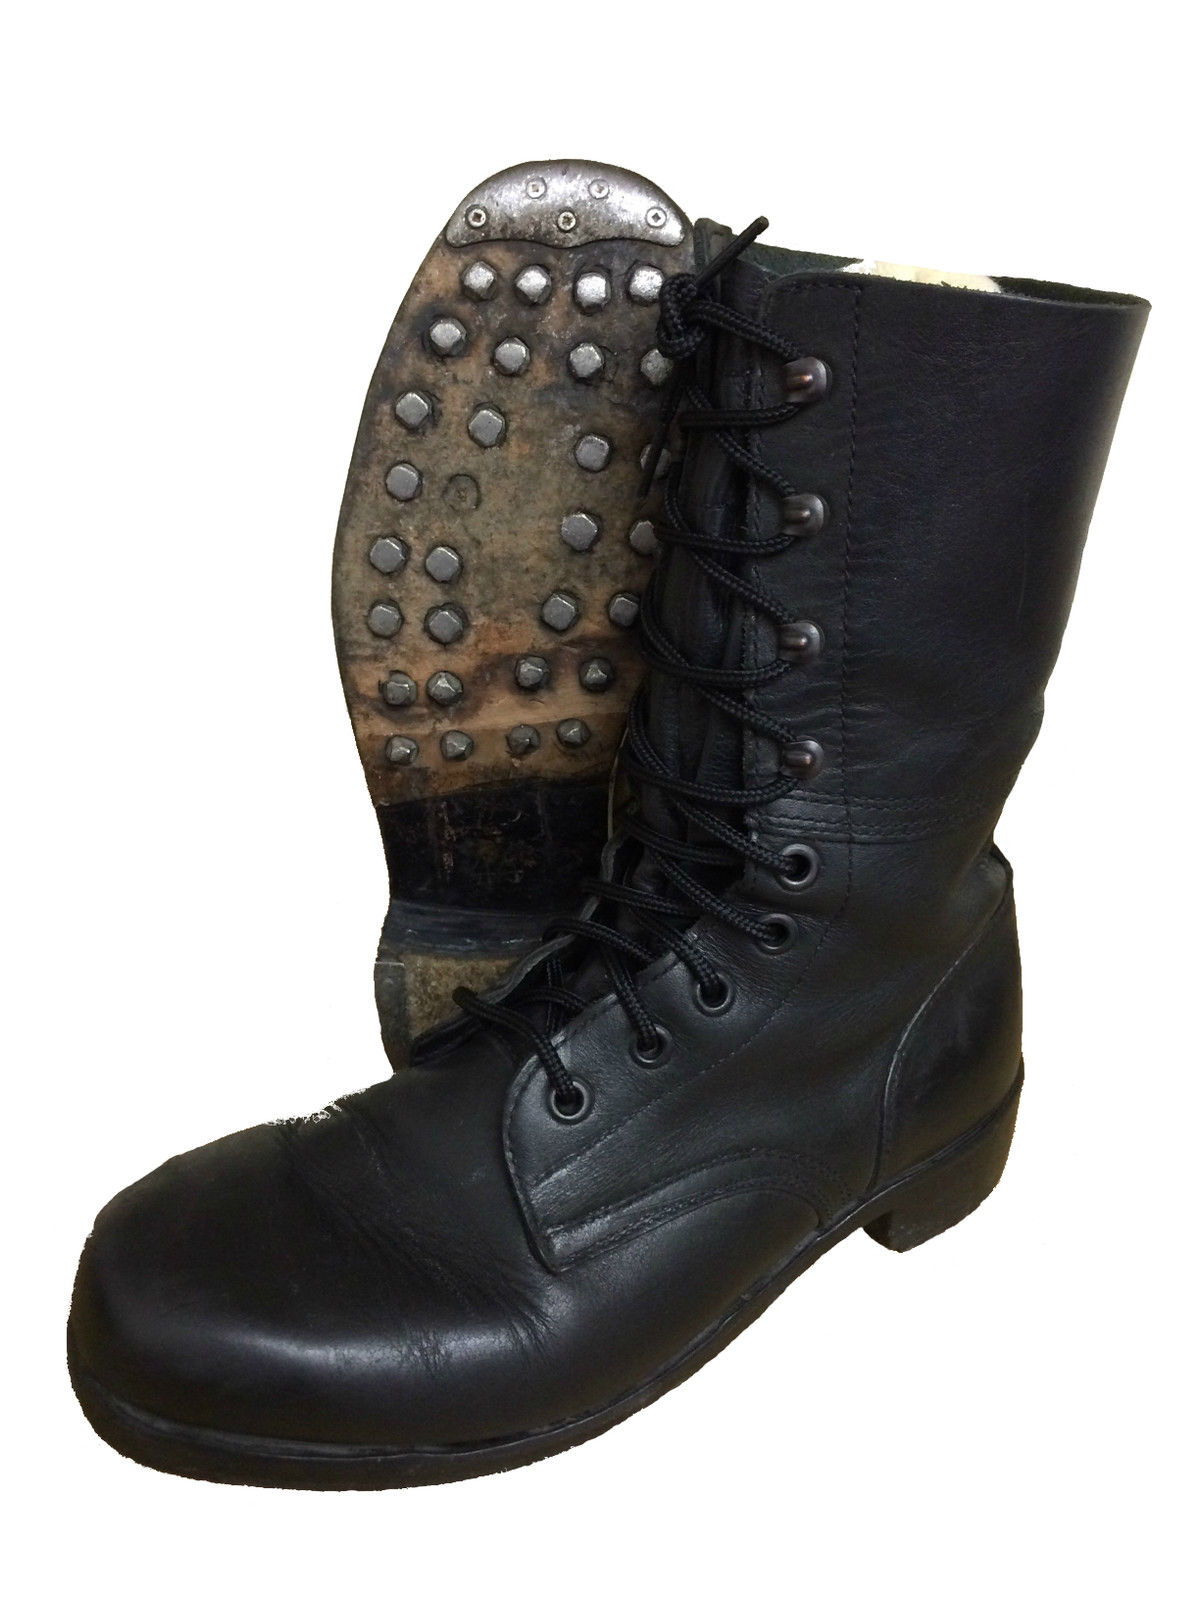 Wwii Double Buckle Boots Germanaustrianunli Parent